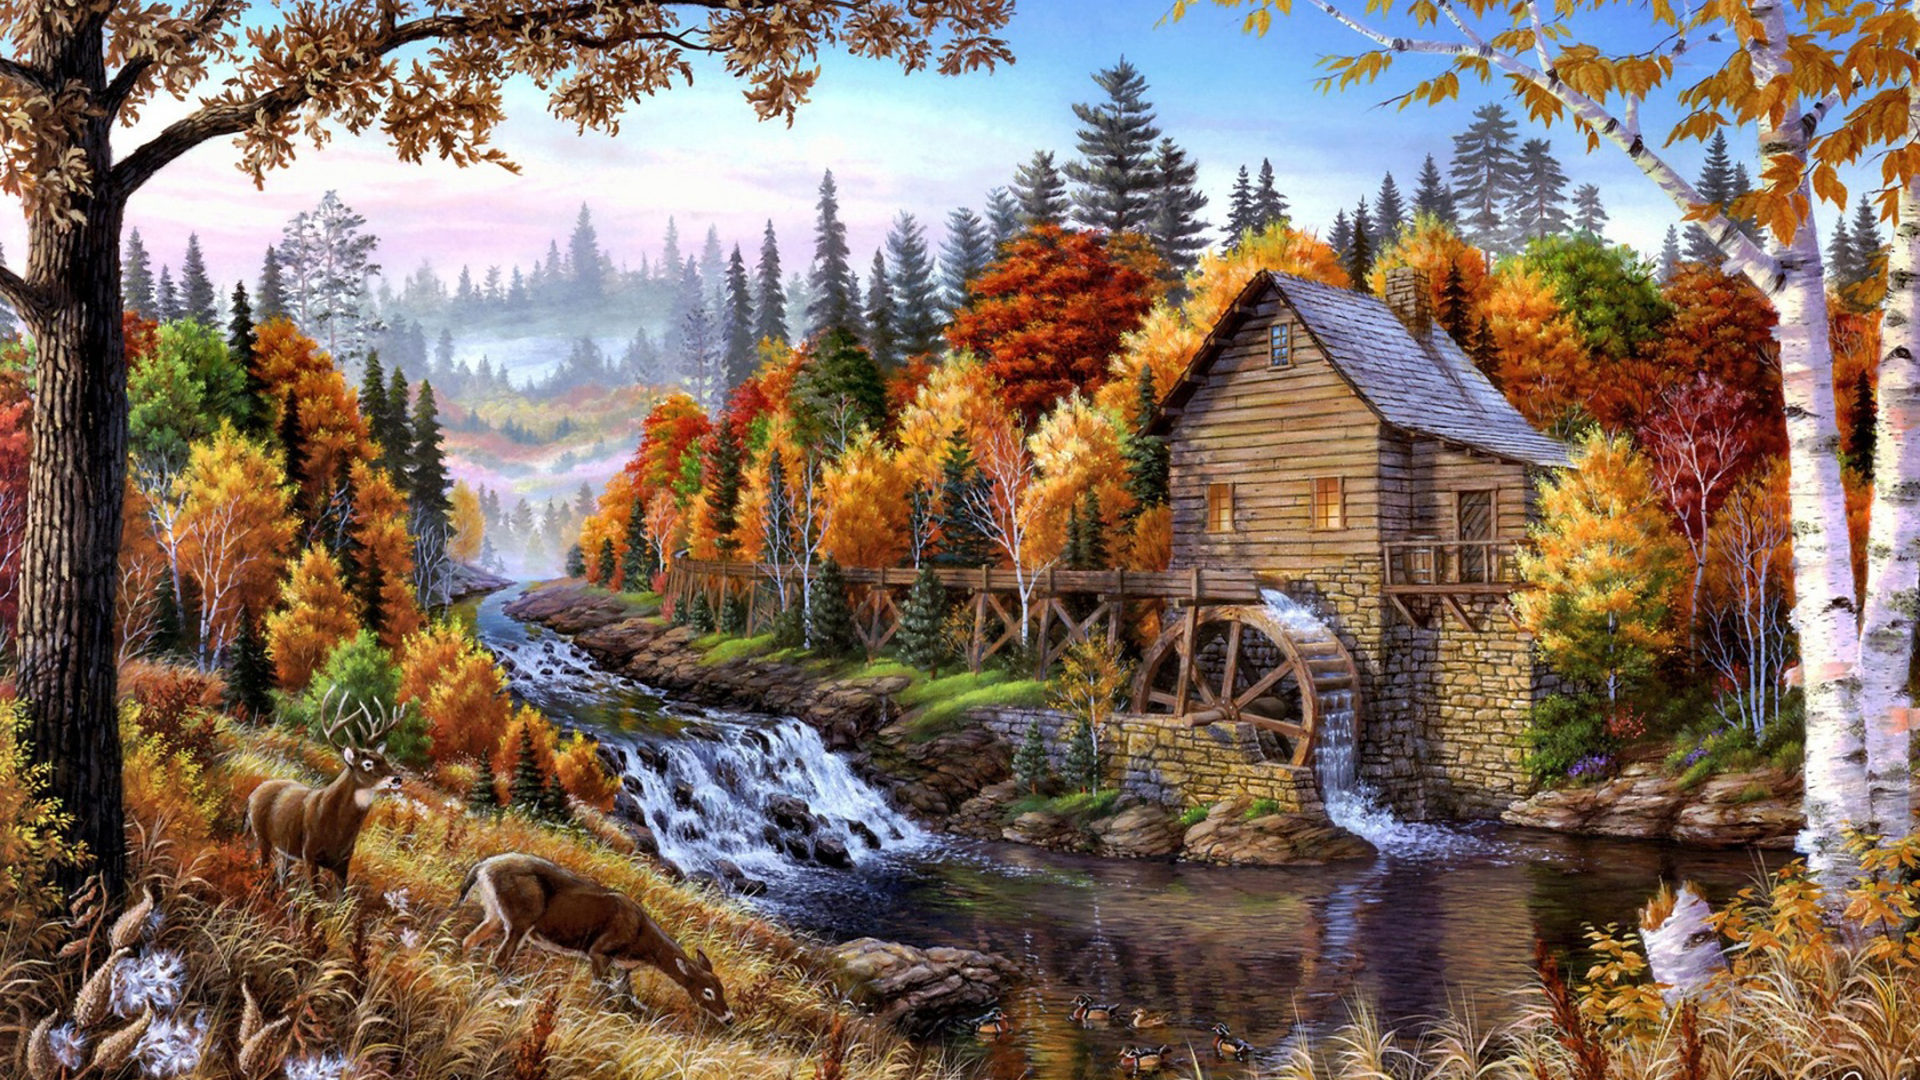 Fall In The Mountains Wallpaper Fall Mill Wooden Mountain River Waterfall Forest With Pine